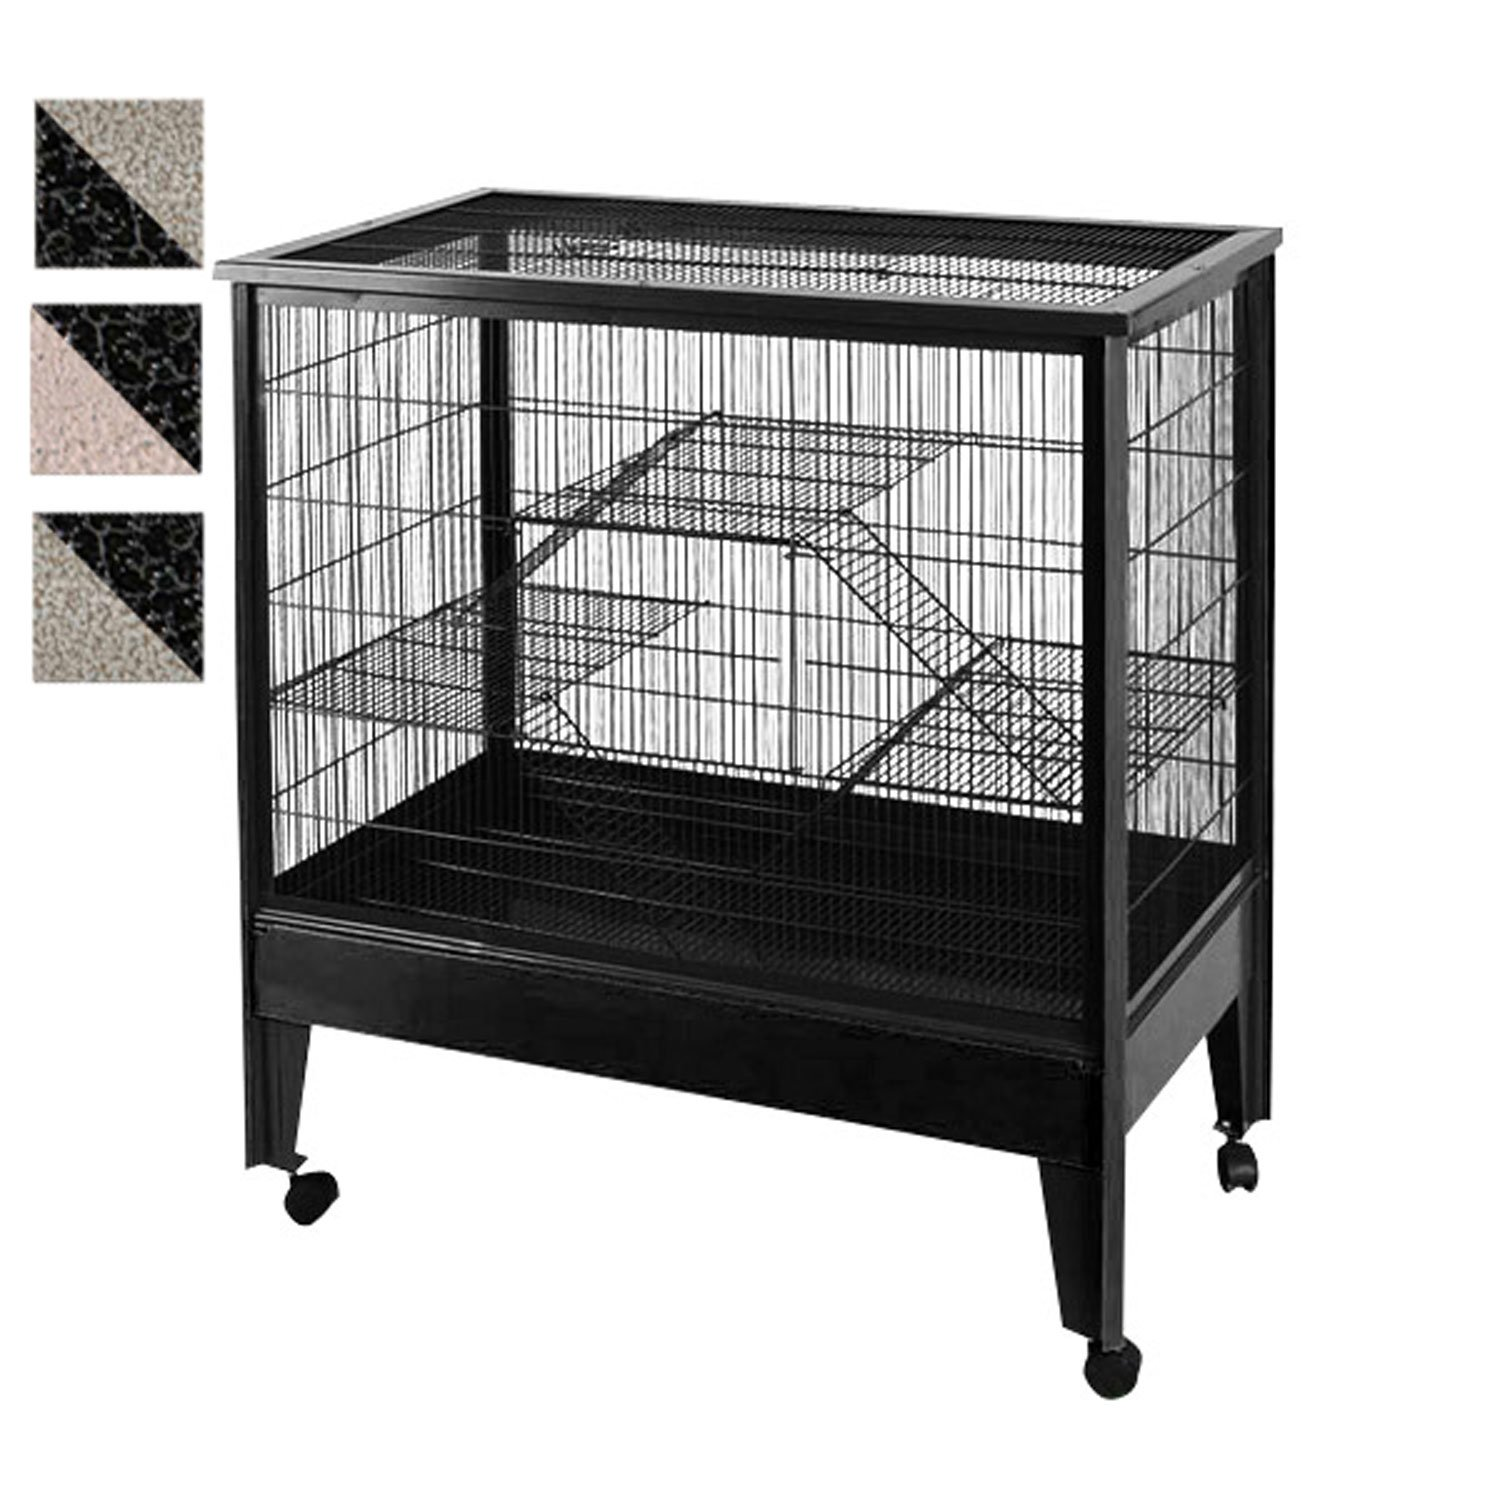 A&E Cage Company 3 Level Small Animal Cage on Casters in Black